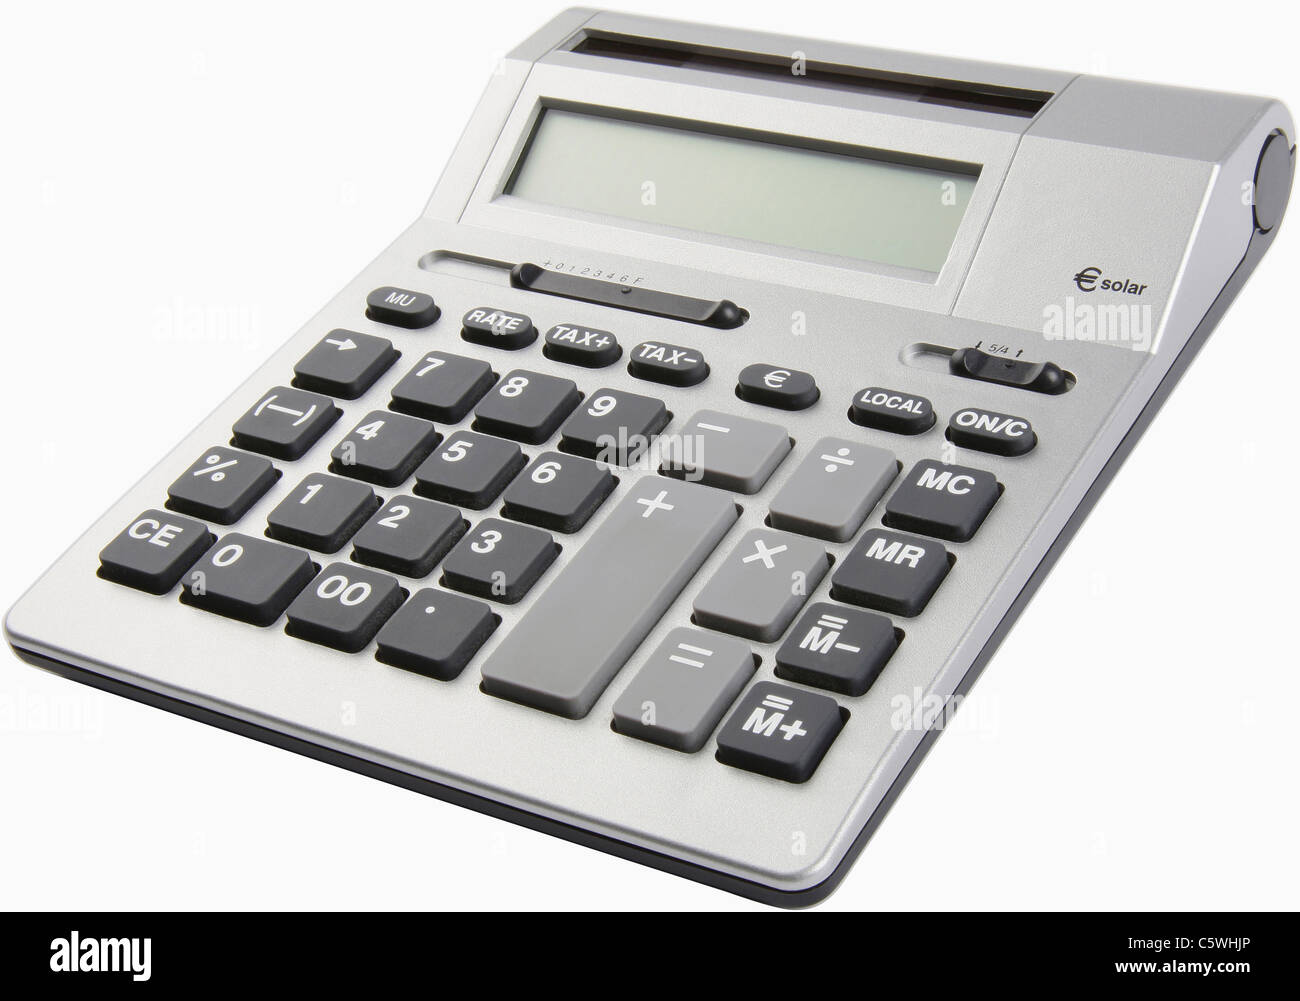 Calculatrice de bureau sur fond blanc, Close up Photo Stock